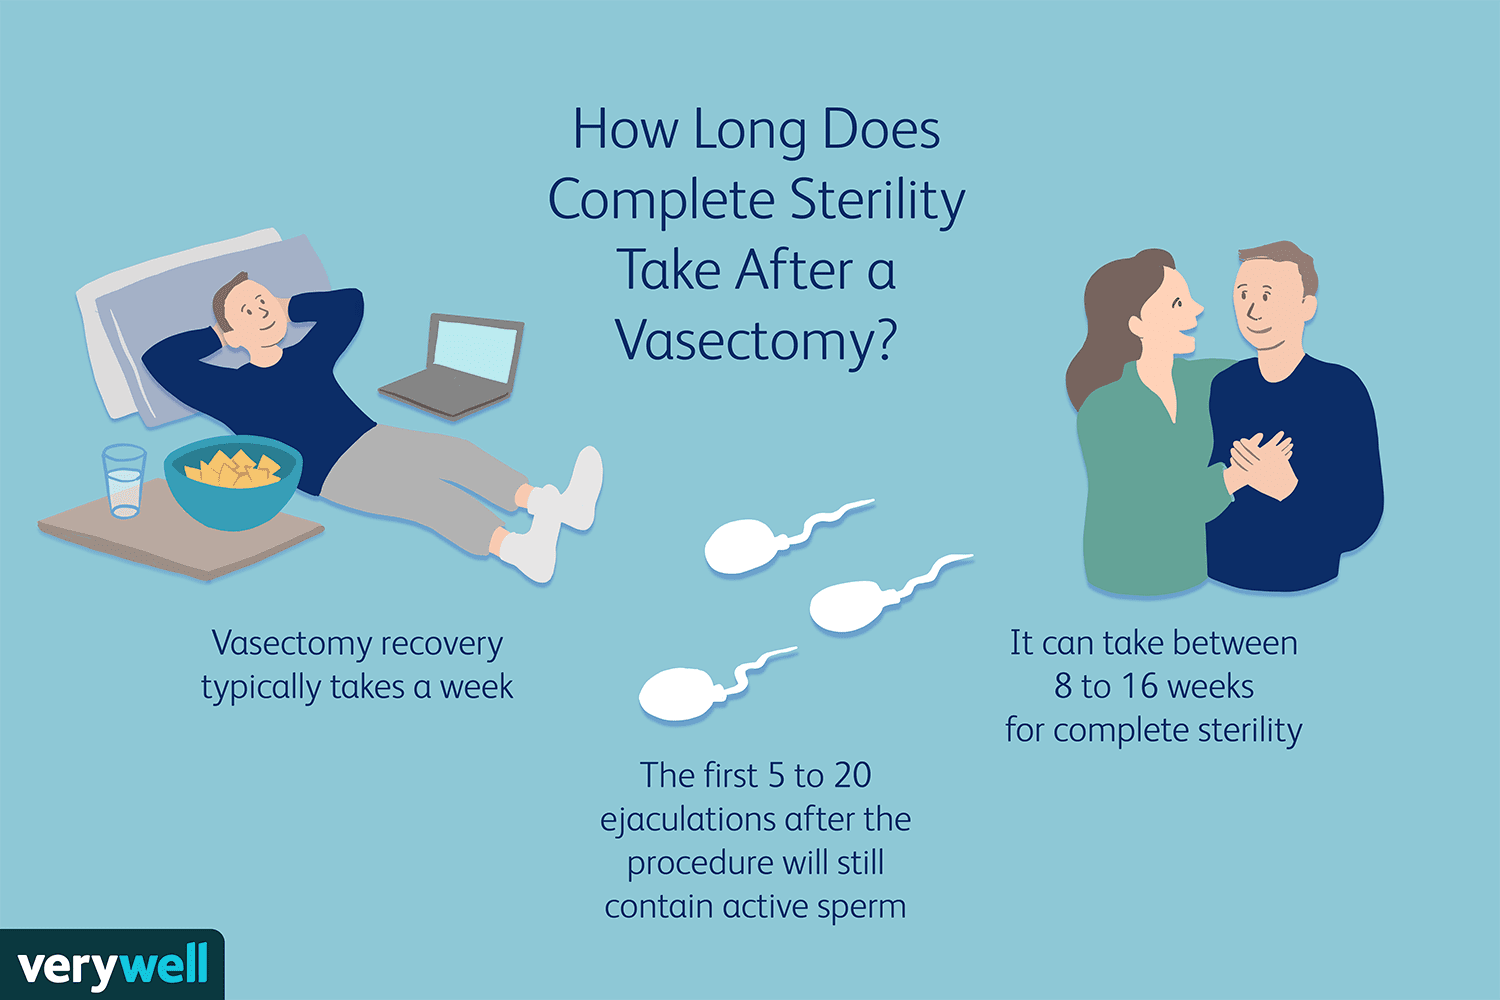 How long does complete sterility take after a vasectomy?